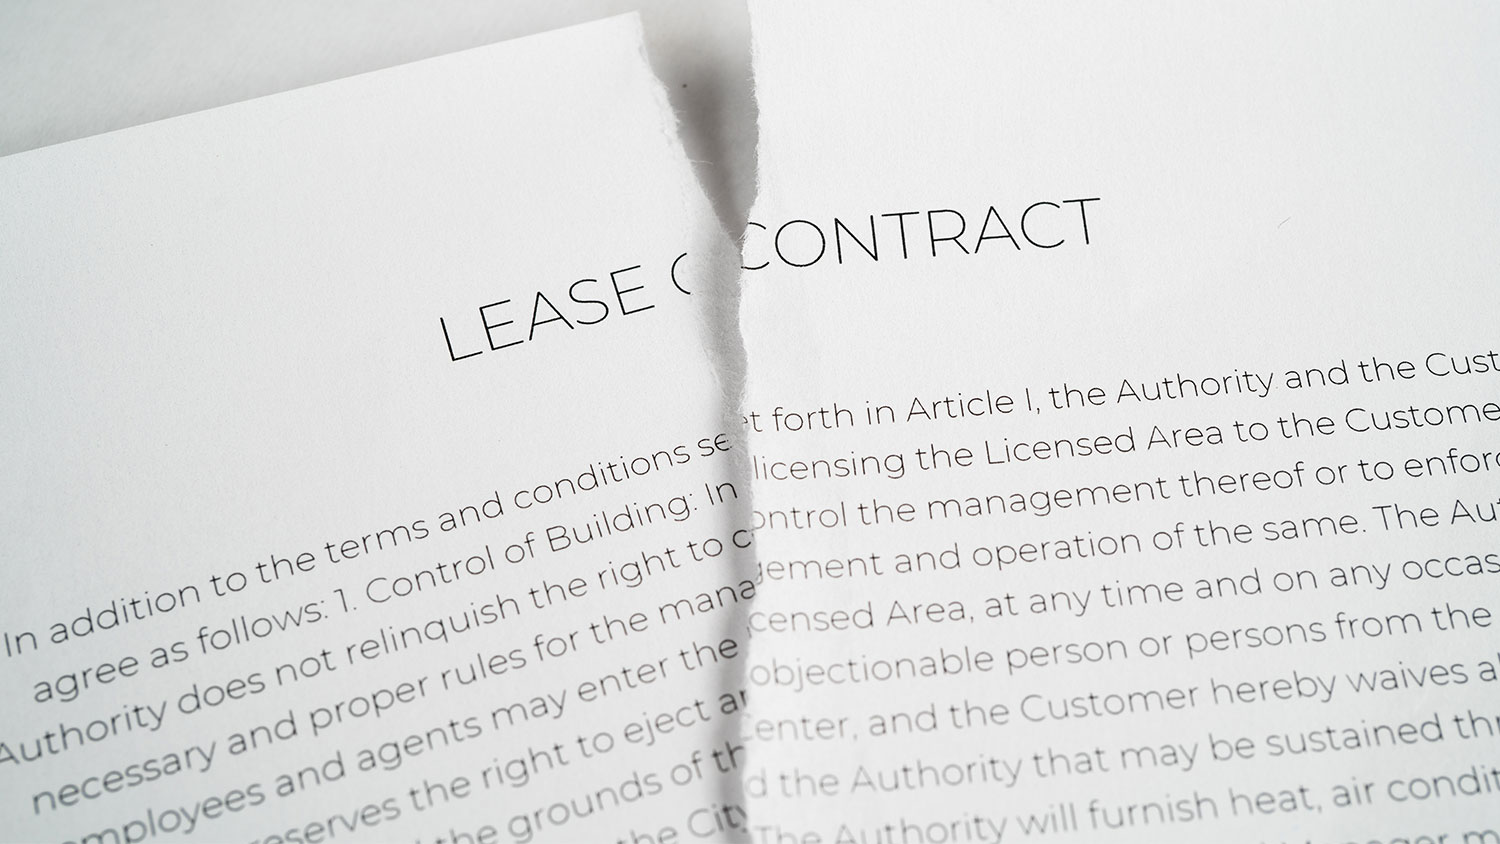 WHAT IS BREACH OF CONTRACT & WHAT LANDLORDS CAN DO ABOUT IT